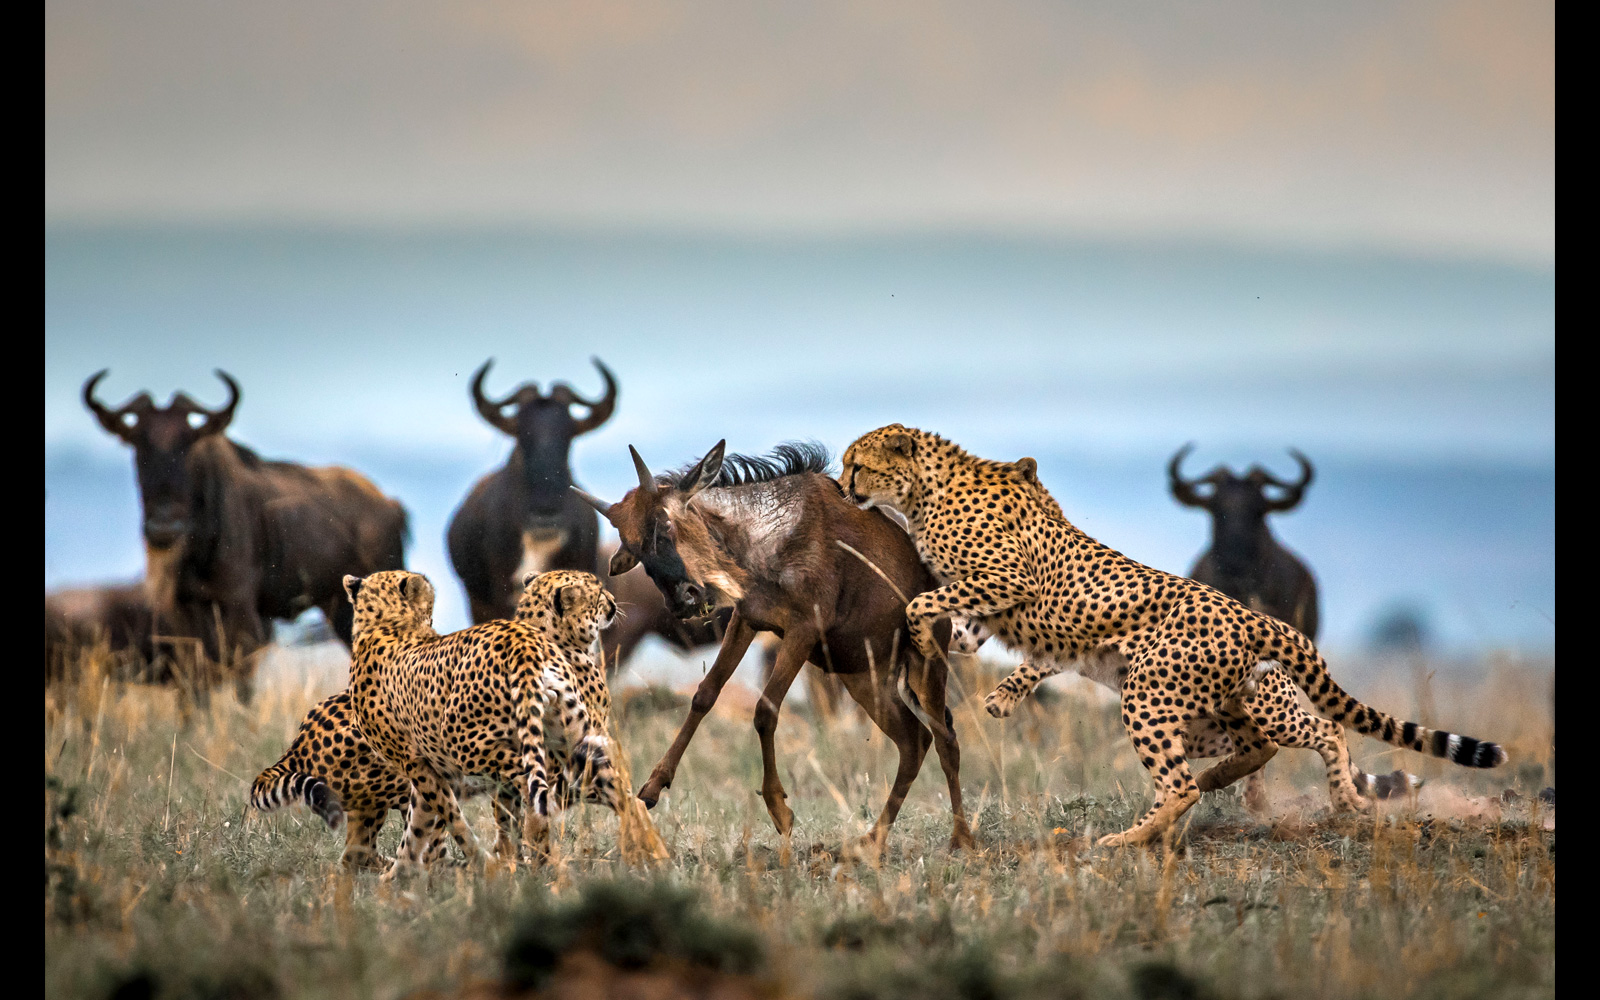 Cheetahs overwhelm a young wildebeest in Maasai Mara National Reserve, Kenya © Paolo Torchio